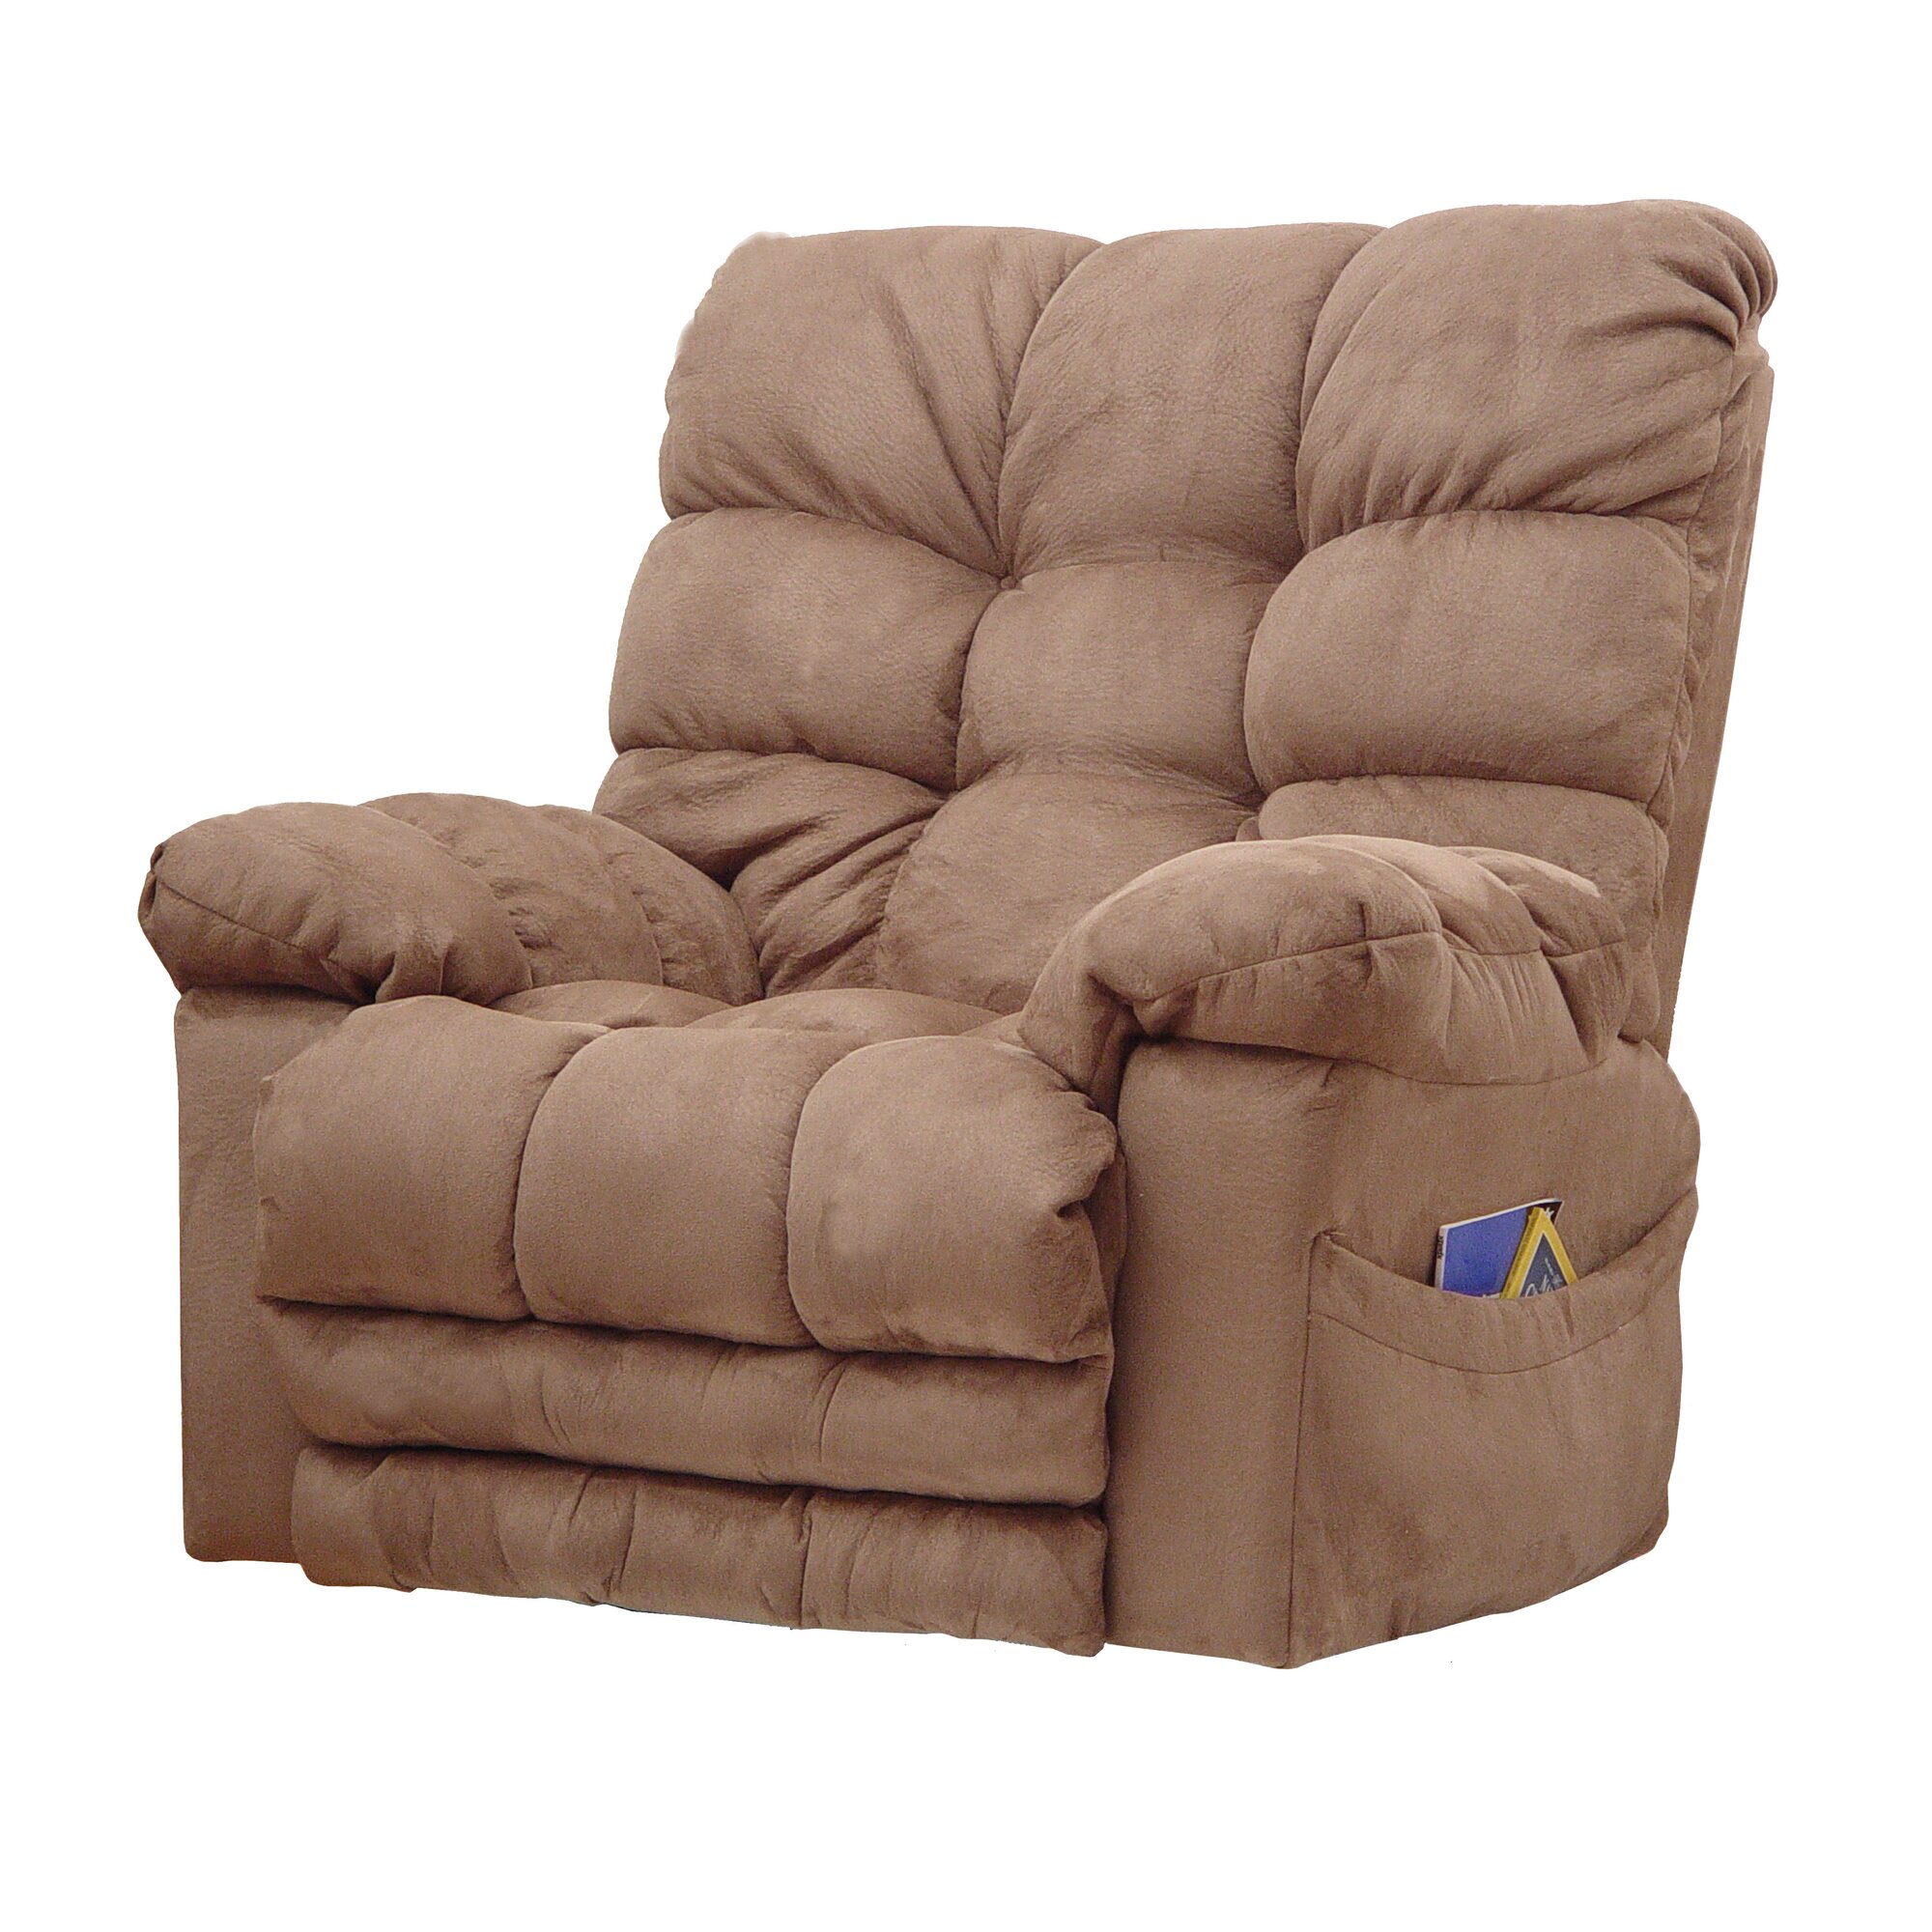 Magnum Chaise Recliner  Massage Chairs You ll Love Wayfair. Rent Recliners And Accent Chairs Akron   deathrowbook com